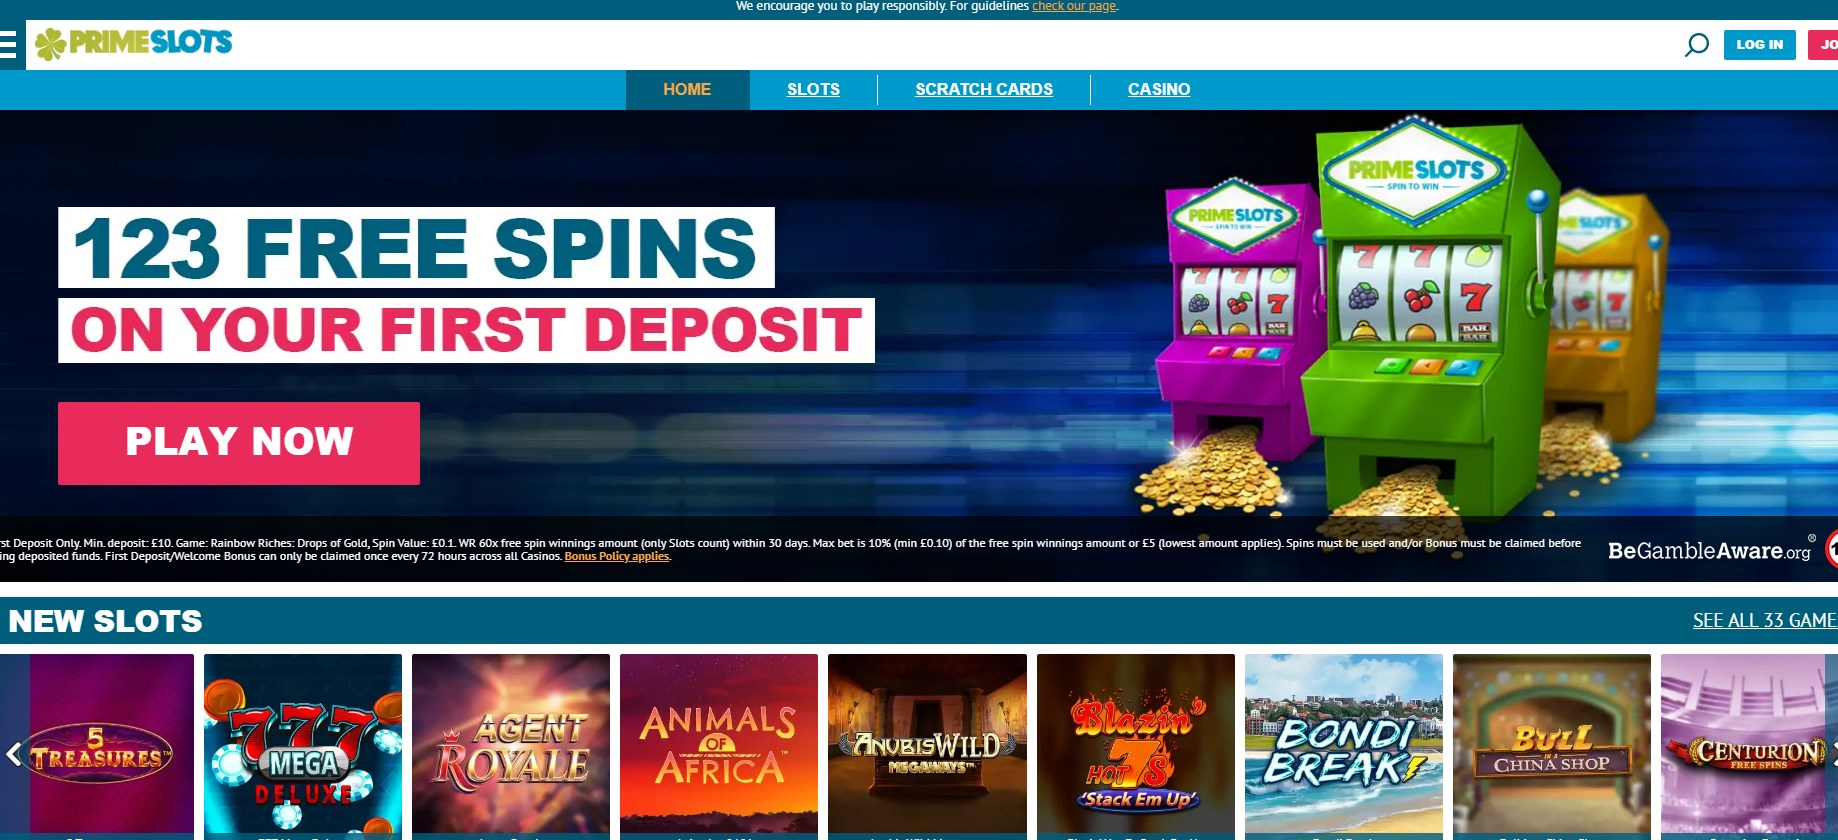 Prime Slots UK Casino Review